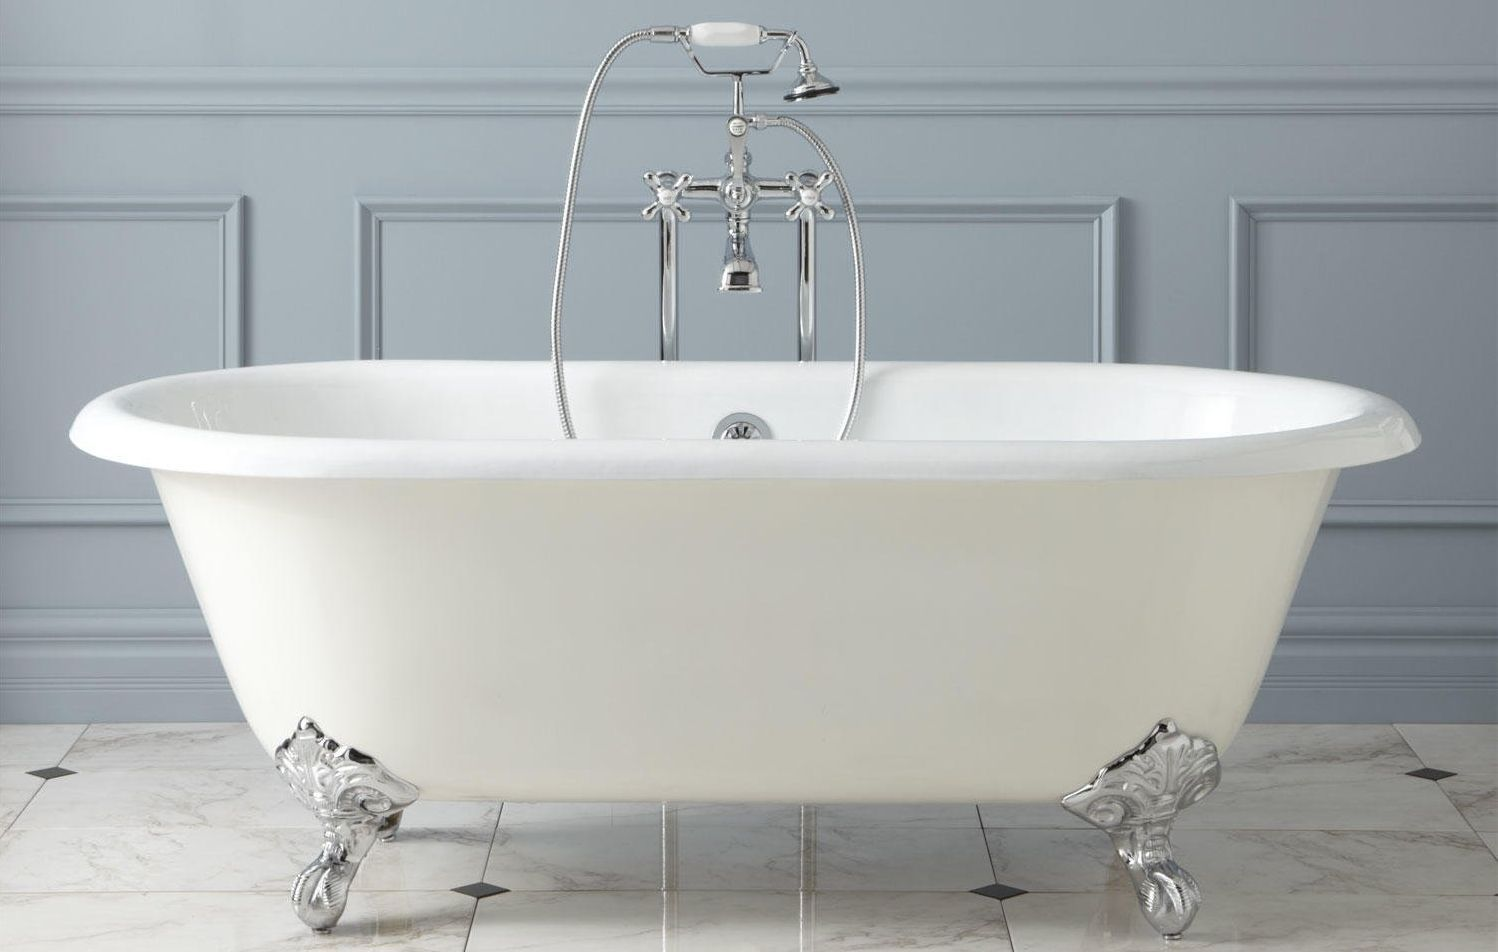 Bathtub Refinishing vs. Liners